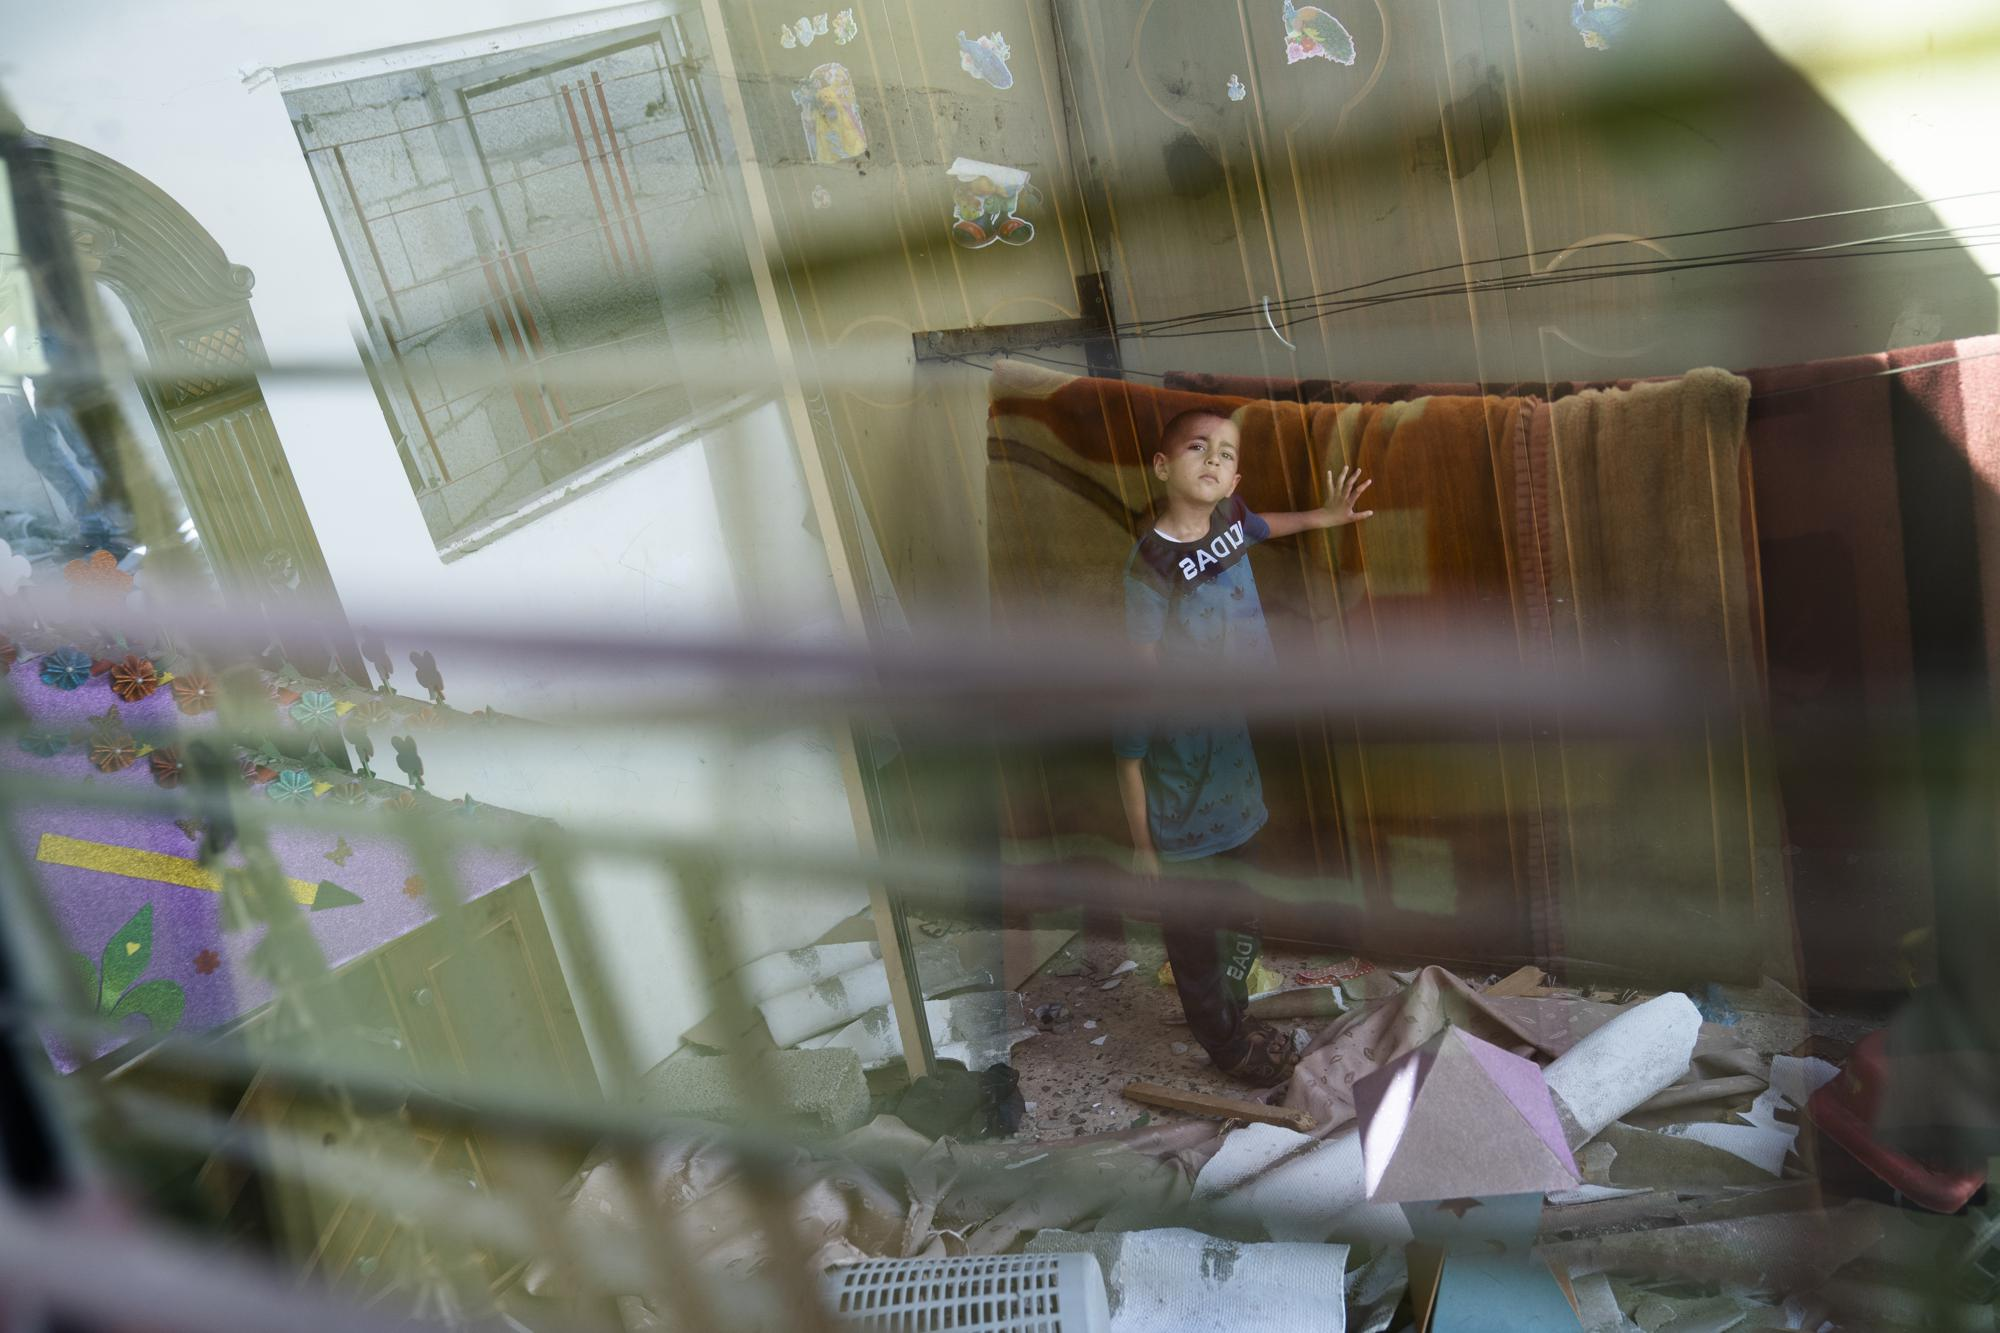 Anas Alhaj Ahmed, 4, stands for a portrait in his bedroom that was damaged when an airstrike destroyed a nearby building prior to a cease-fire that halted an 11-day war between Gaza's Hamas rulers and Israel, Thursday, May 27, 2021, in Maghazi, Gaza Strip. (AP Photo/John Minchillo)